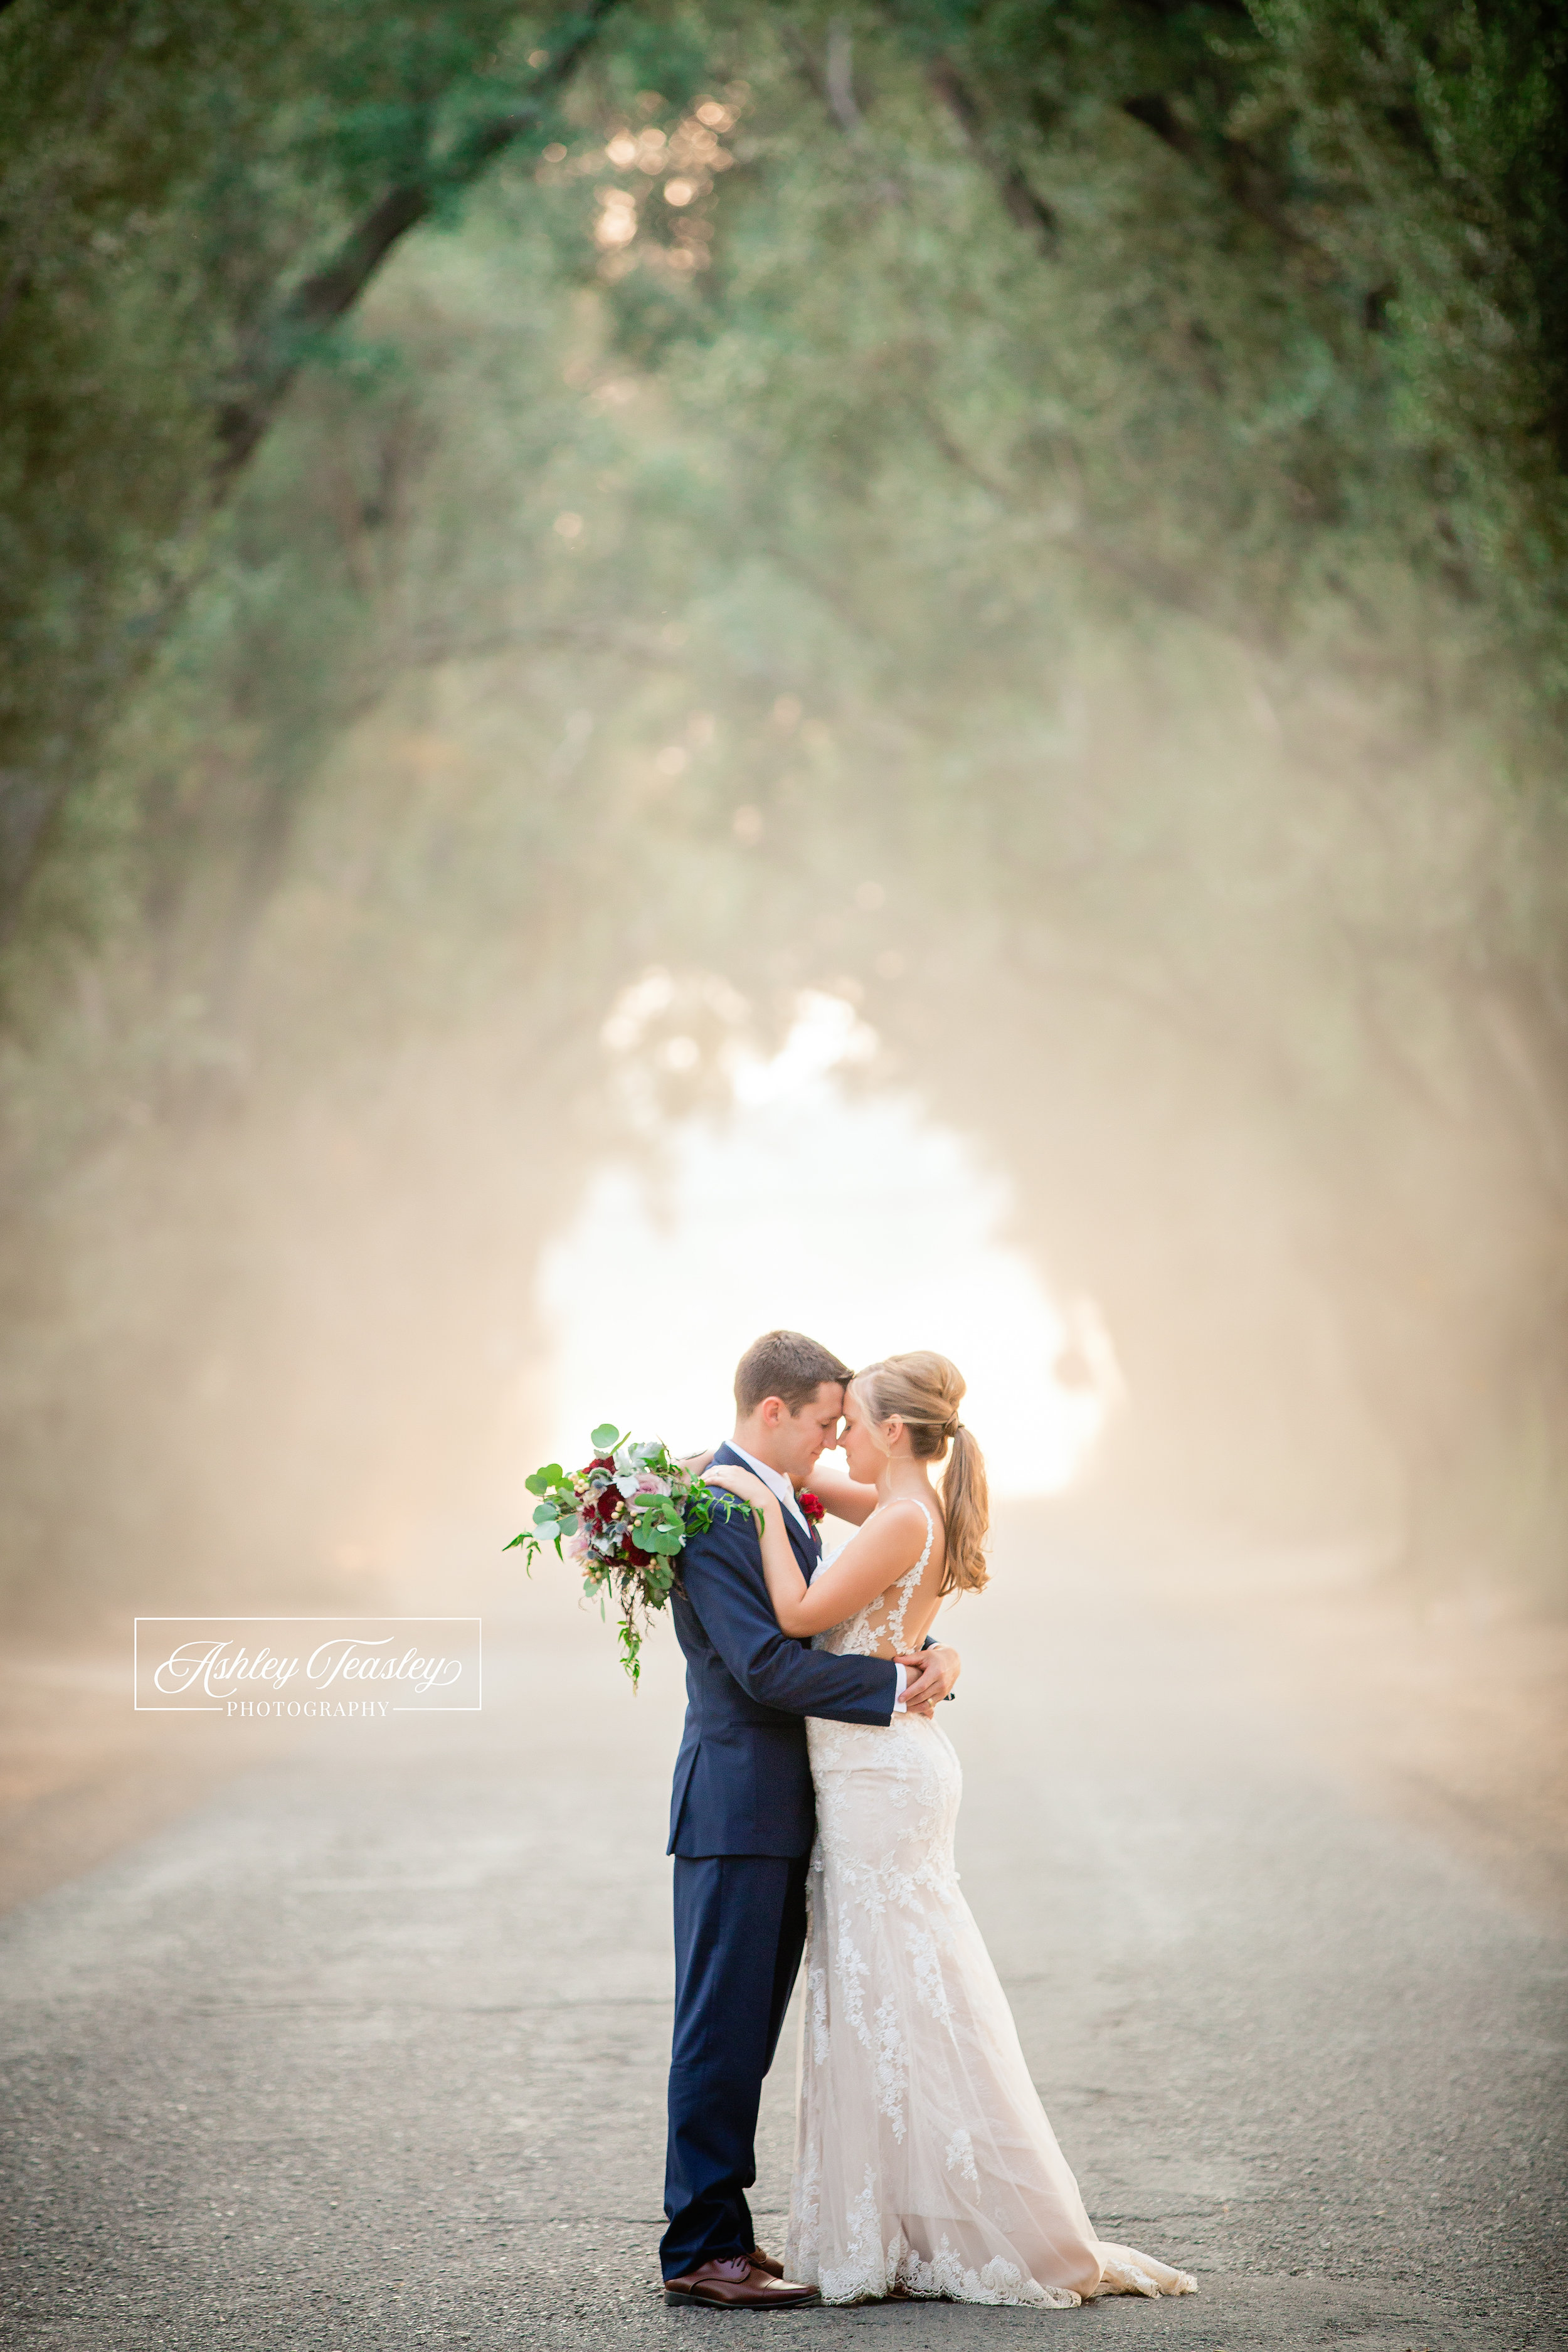 4 The Maples Woodland - Jake & Stephanie - Sacramento Wedding Photographer - Ashley Teasley Photography (1 of 1).jpg